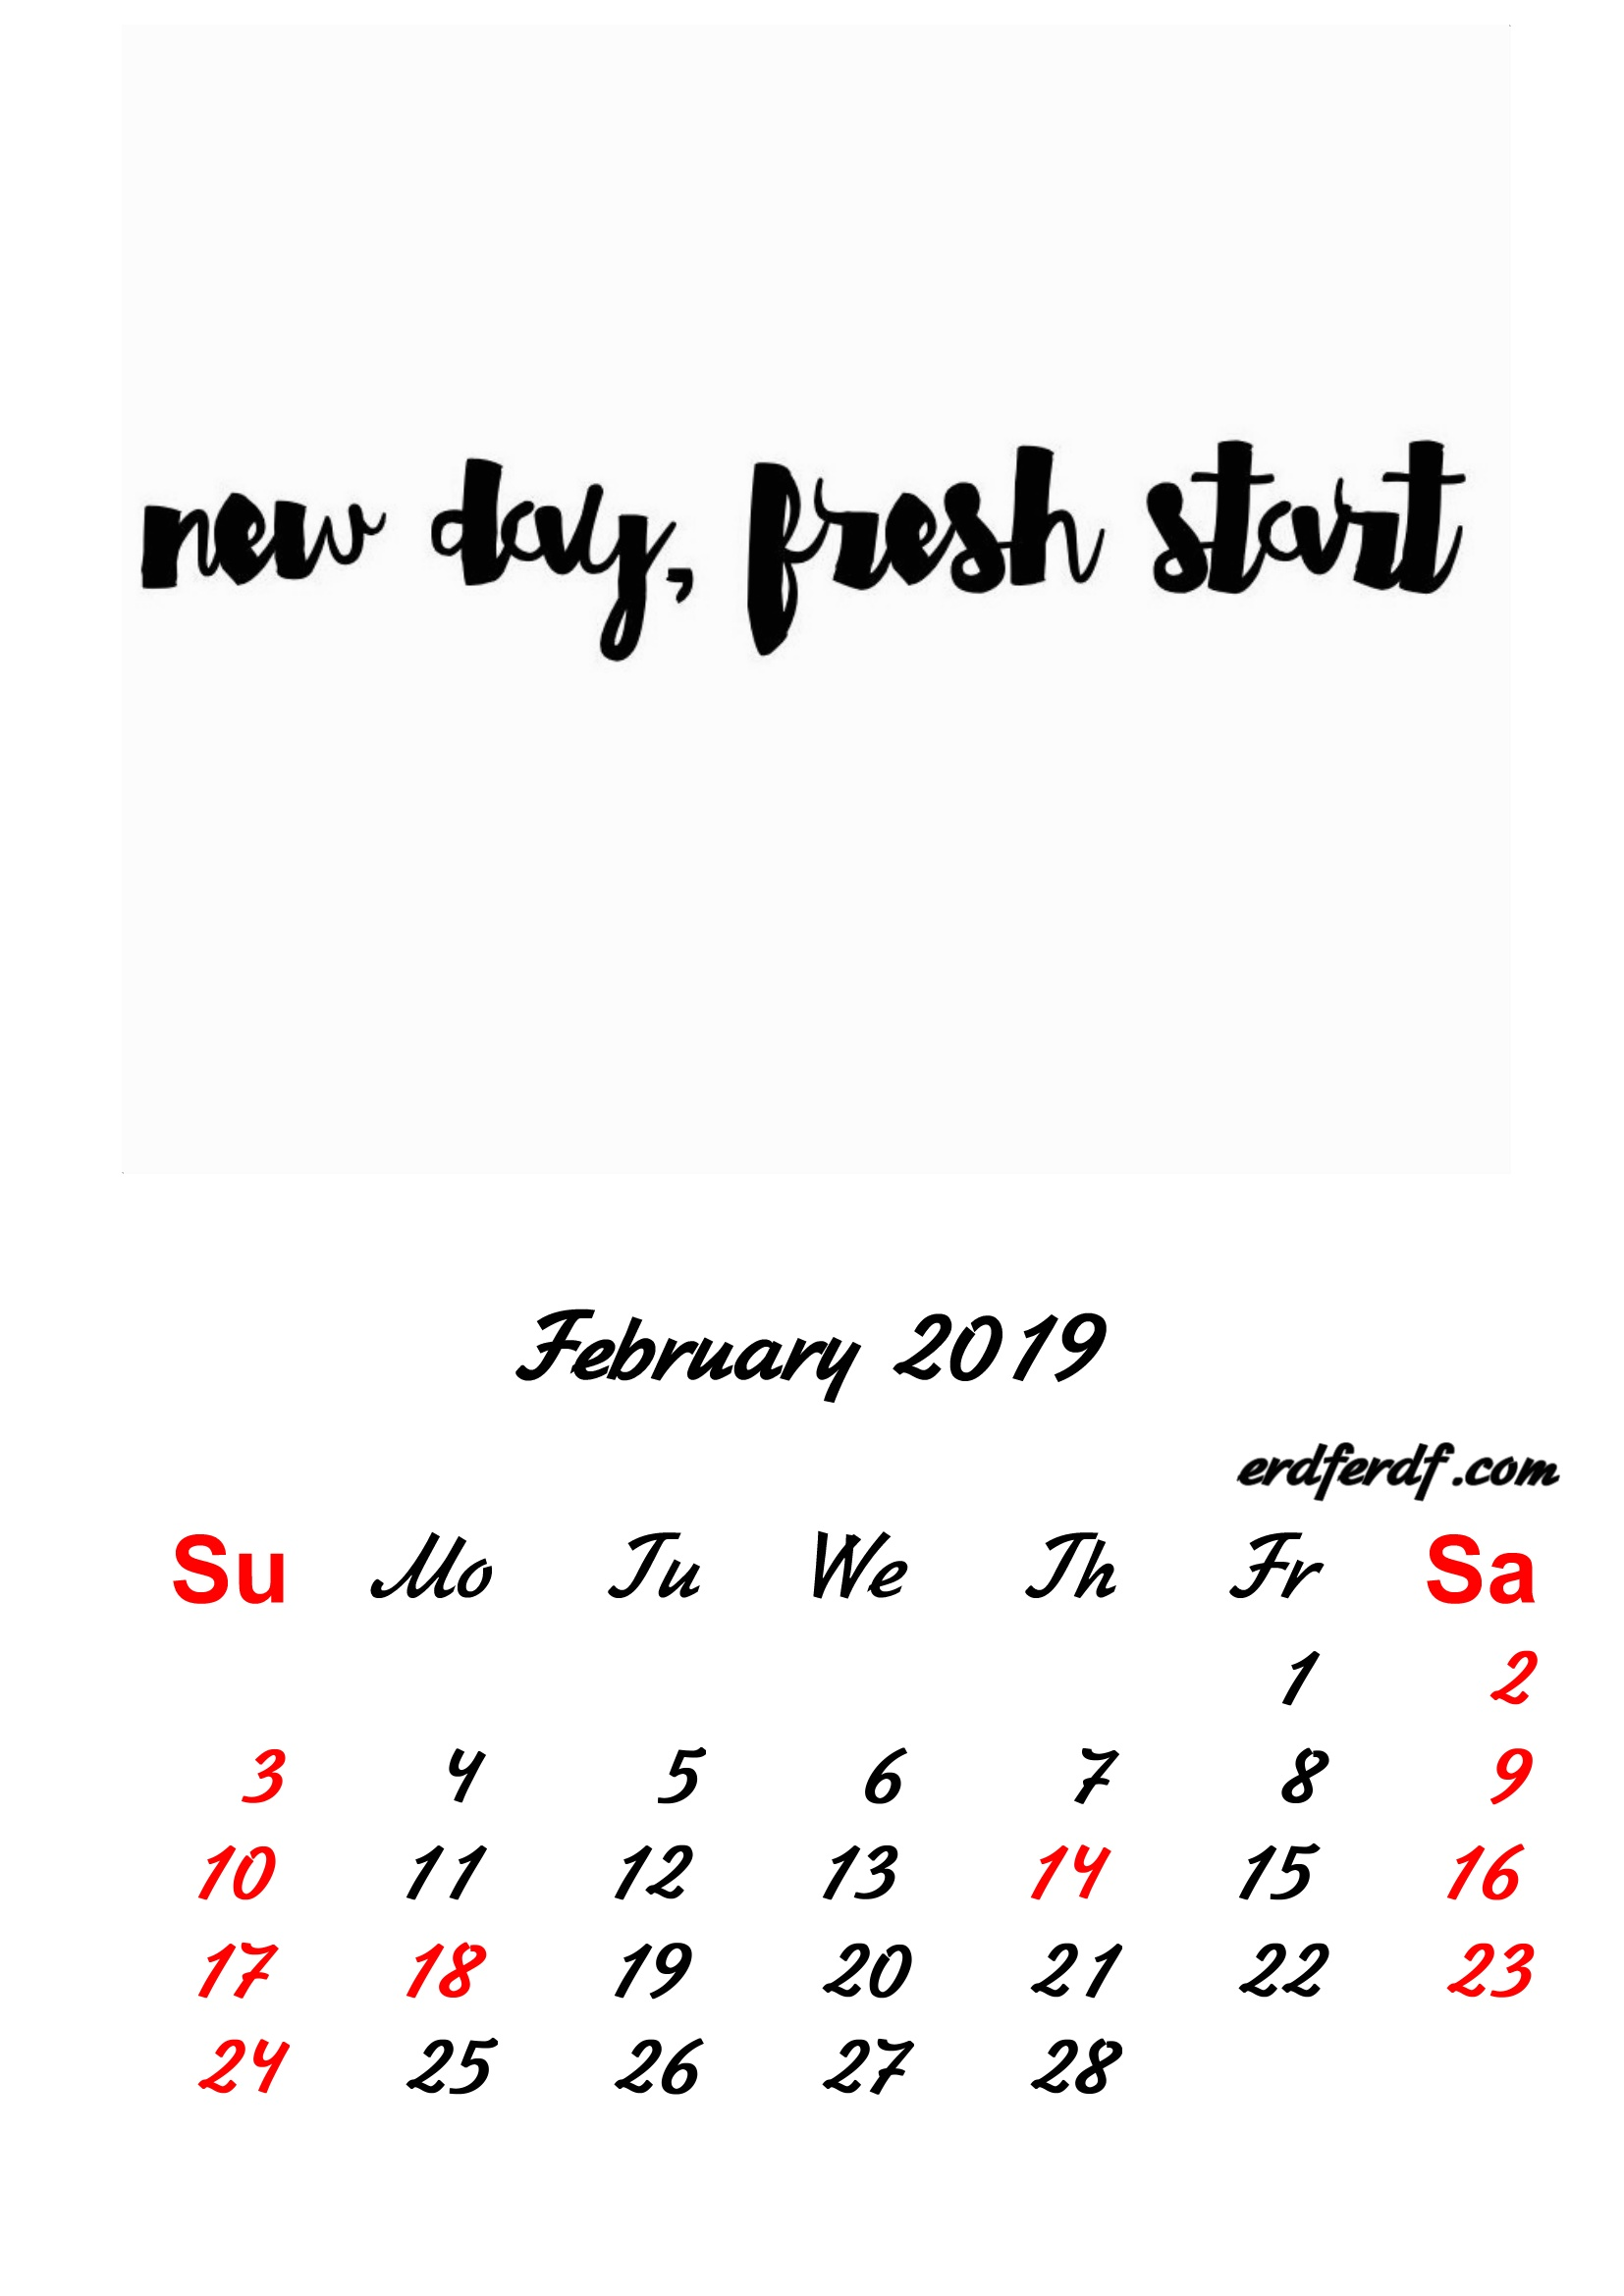 2 February 2019 Inspirational Quotes Pprintable Calendar